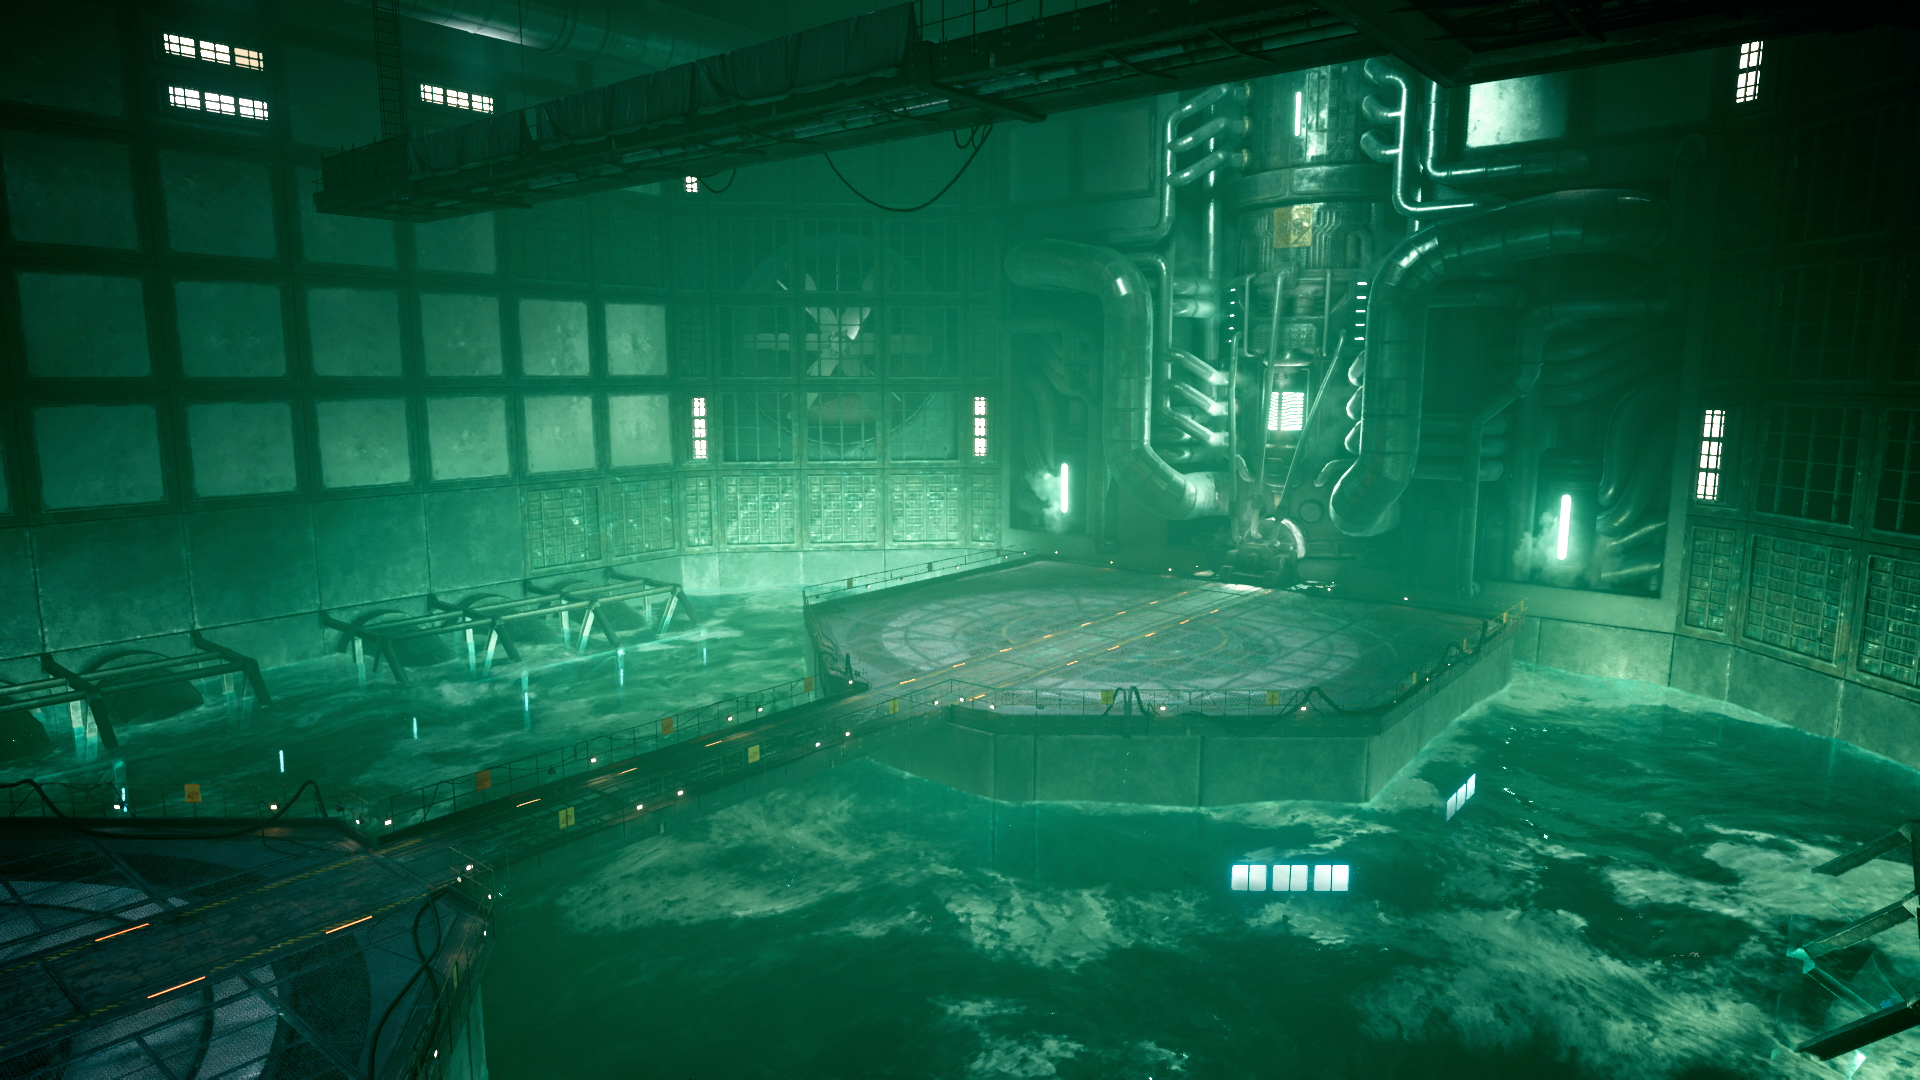 Final Fantasy VII Remake Locations Will Allow Players To Reach Previously Inaccessible Areas From The Original